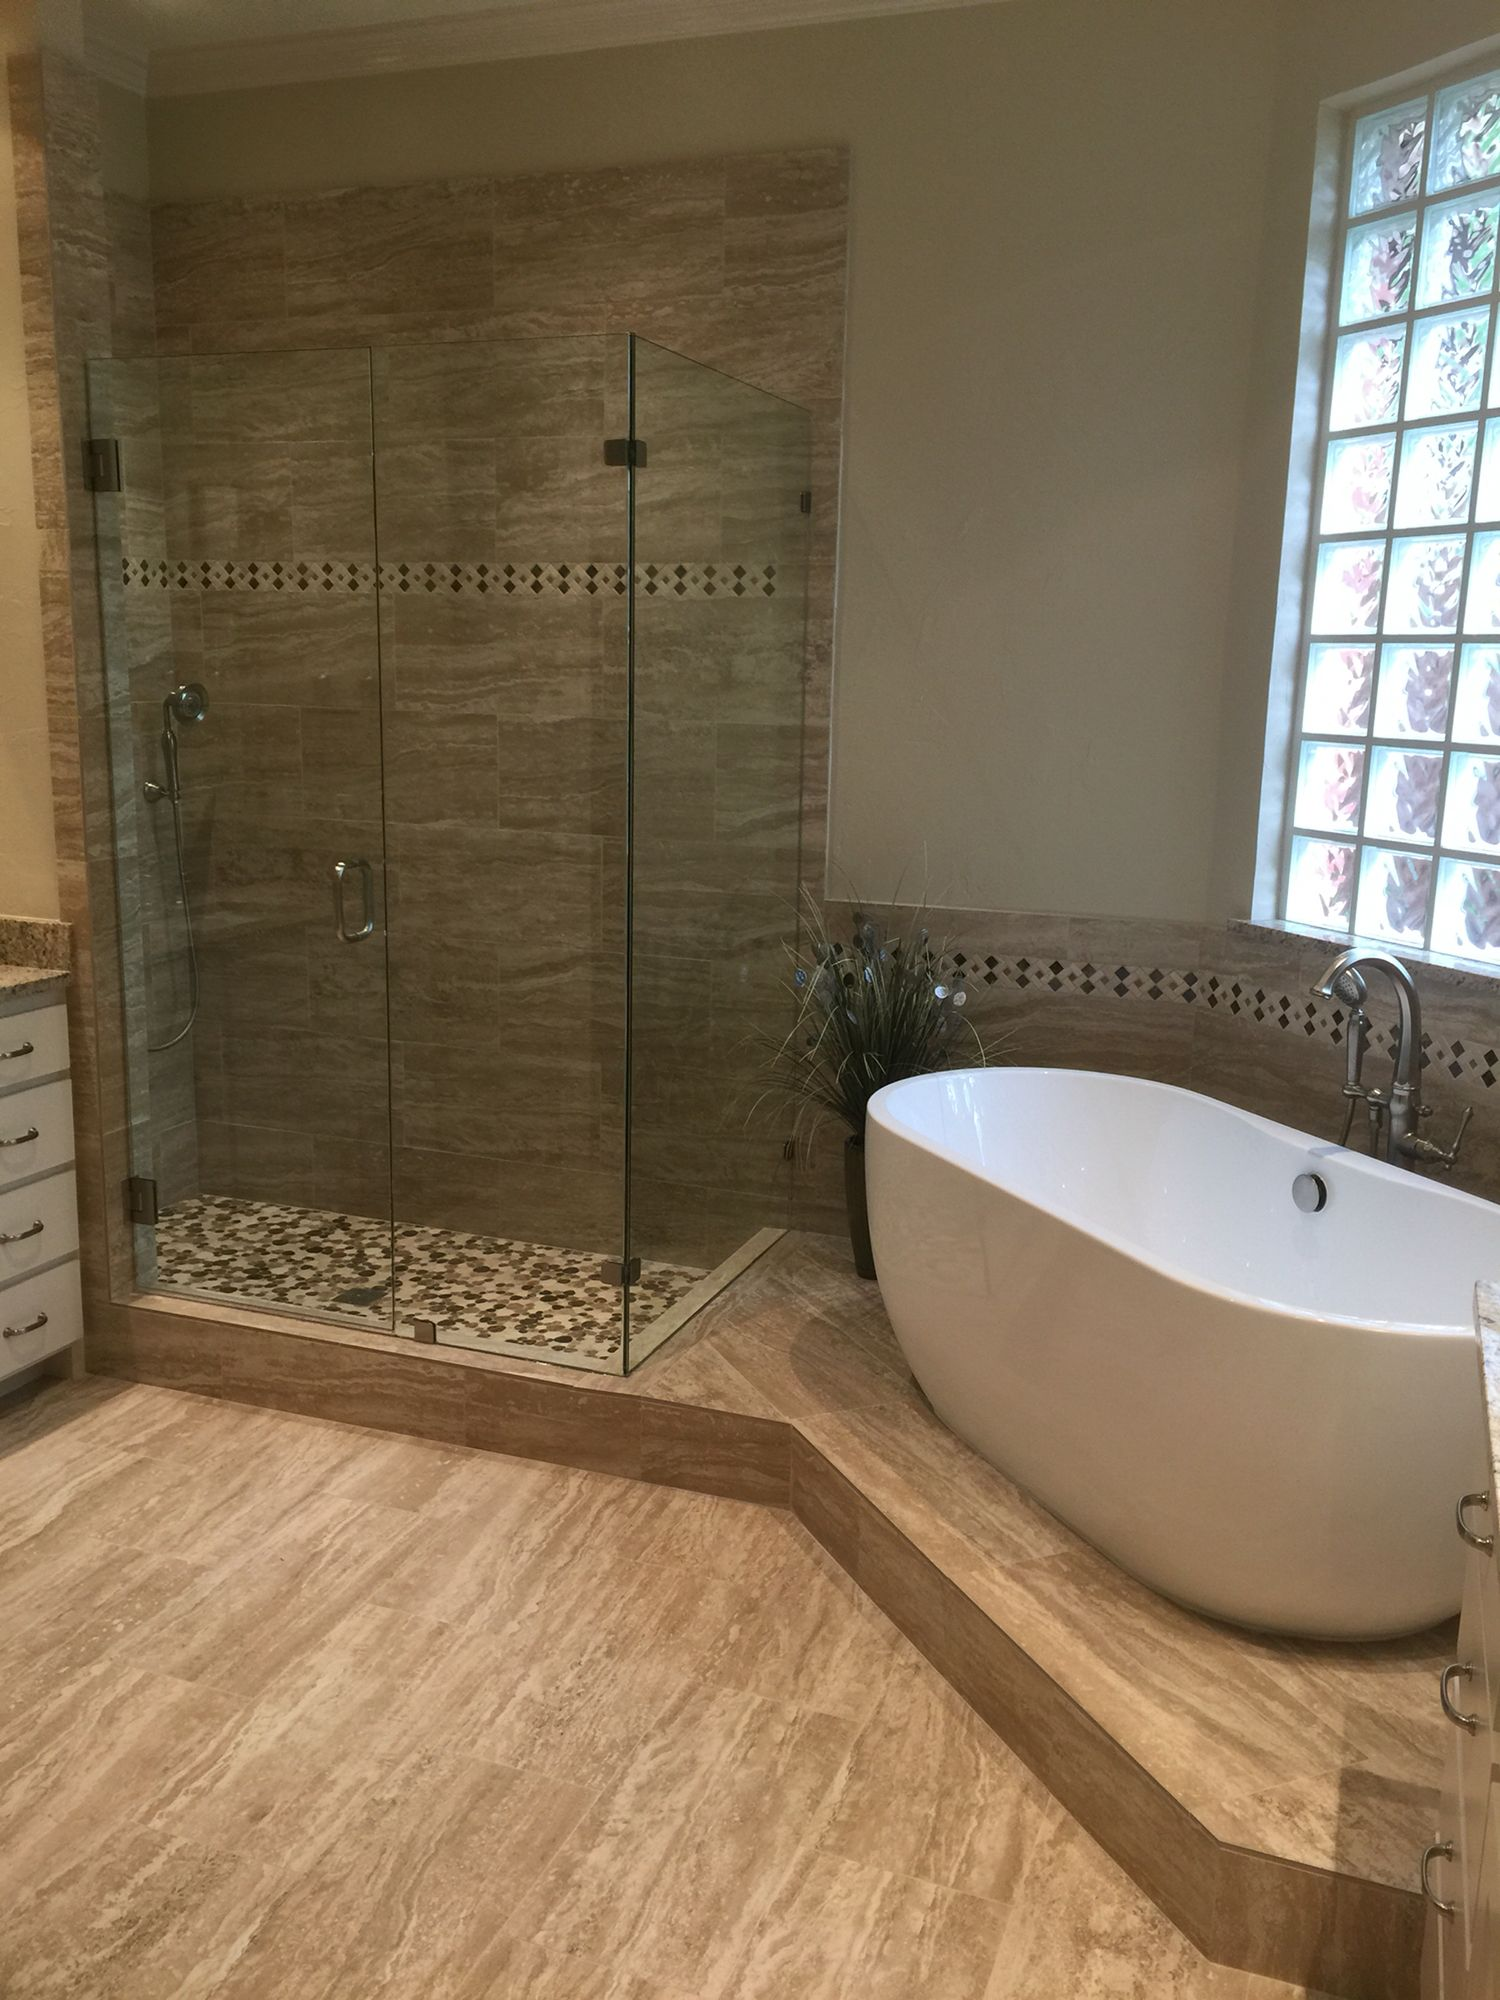 Bathroom remodeling project in Plano,TX | Home remodeling ...